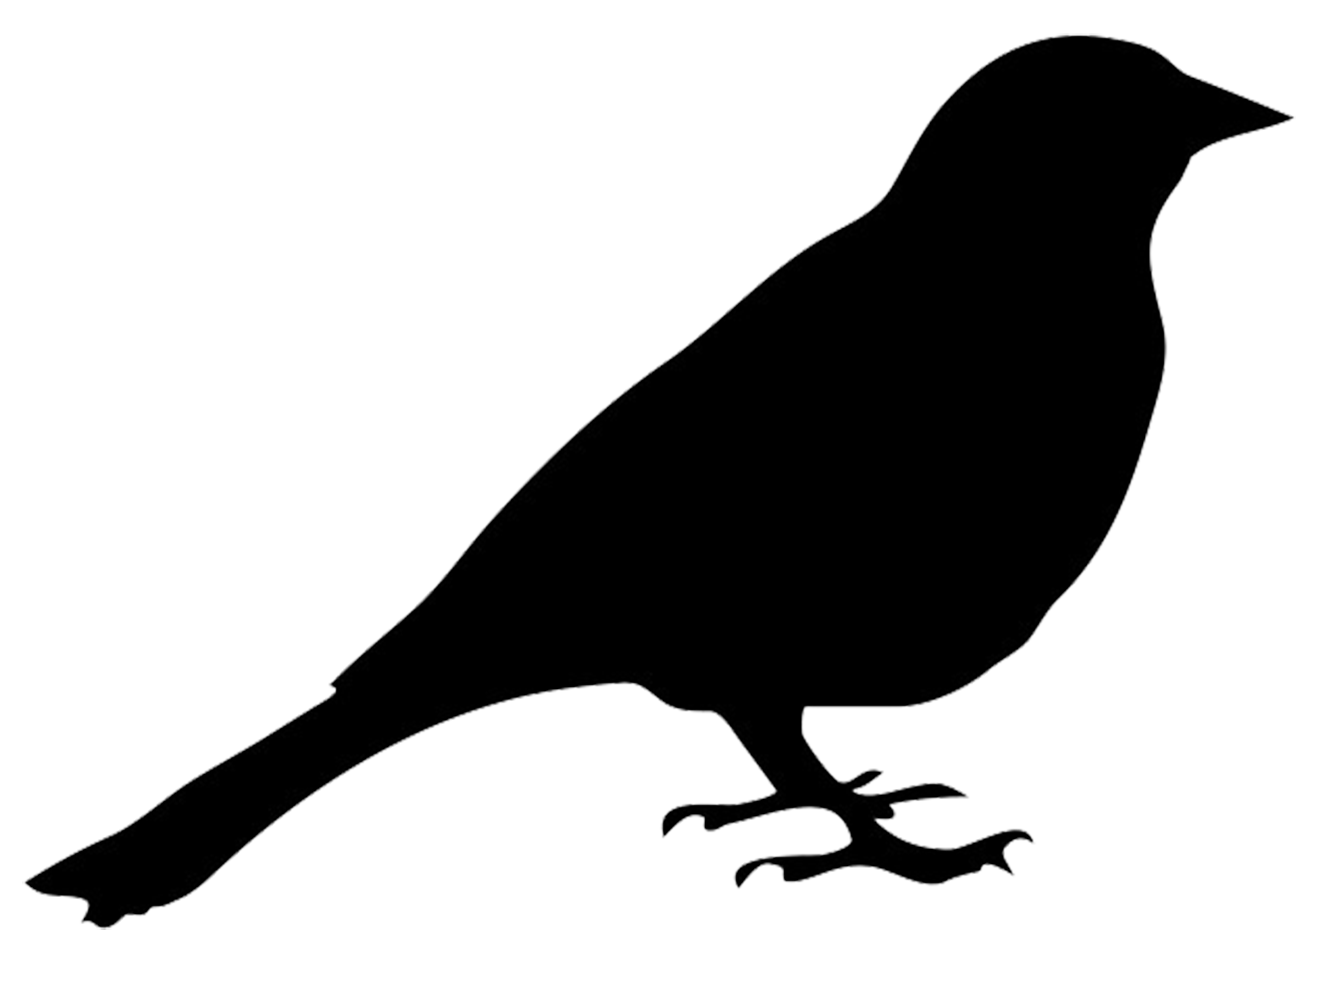 png transparent download Drawing silhouette pencil. Bird silhouettes bullfinch of